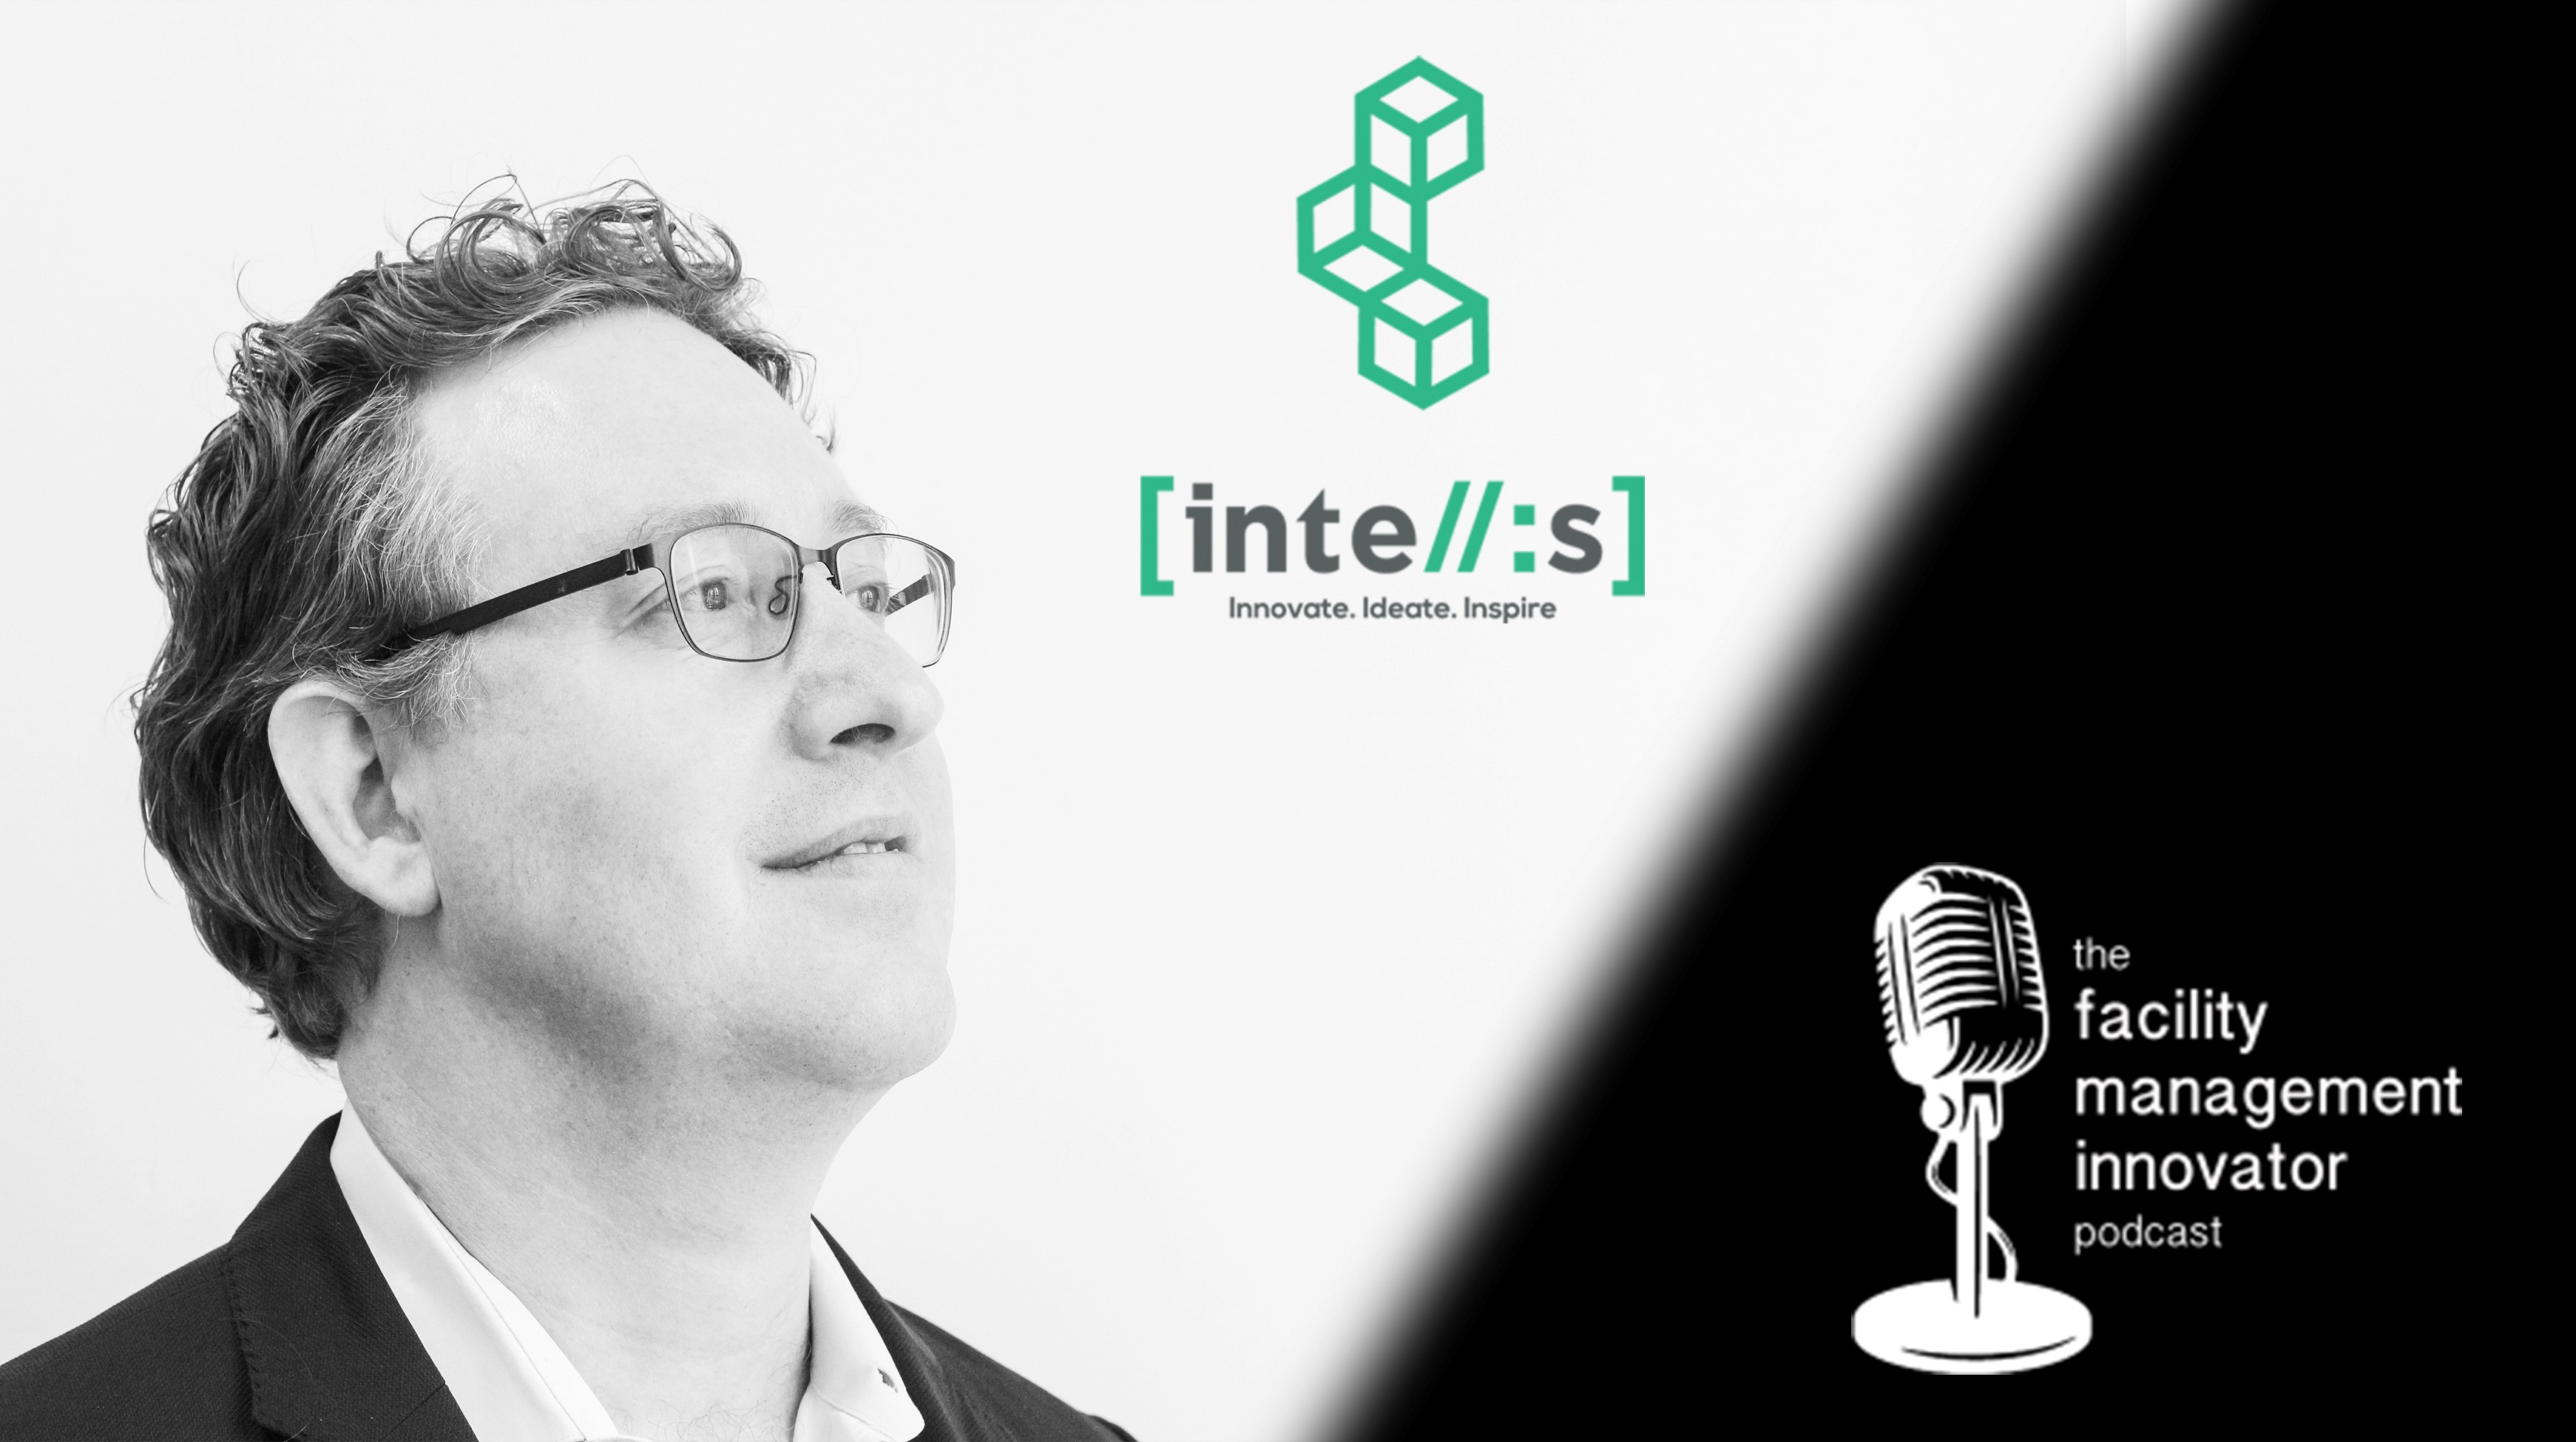 Ep. 54: FM Data Sciences & Workplace Technologies | Steve Warshaw - CEO of Intellis